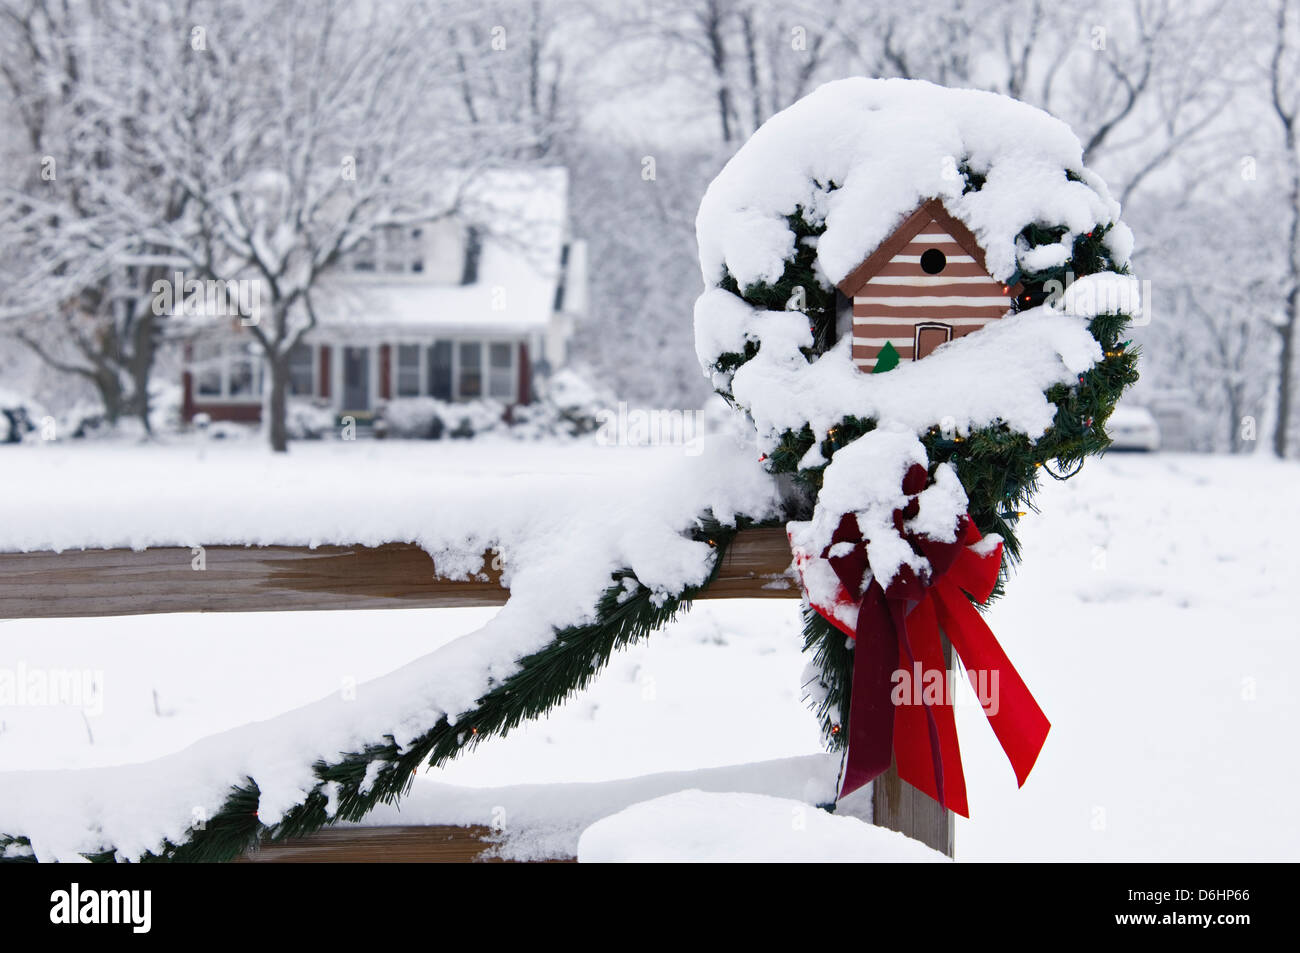 Christmas Christmas Snow Farm Stock Photos & Christmas Christmas ...